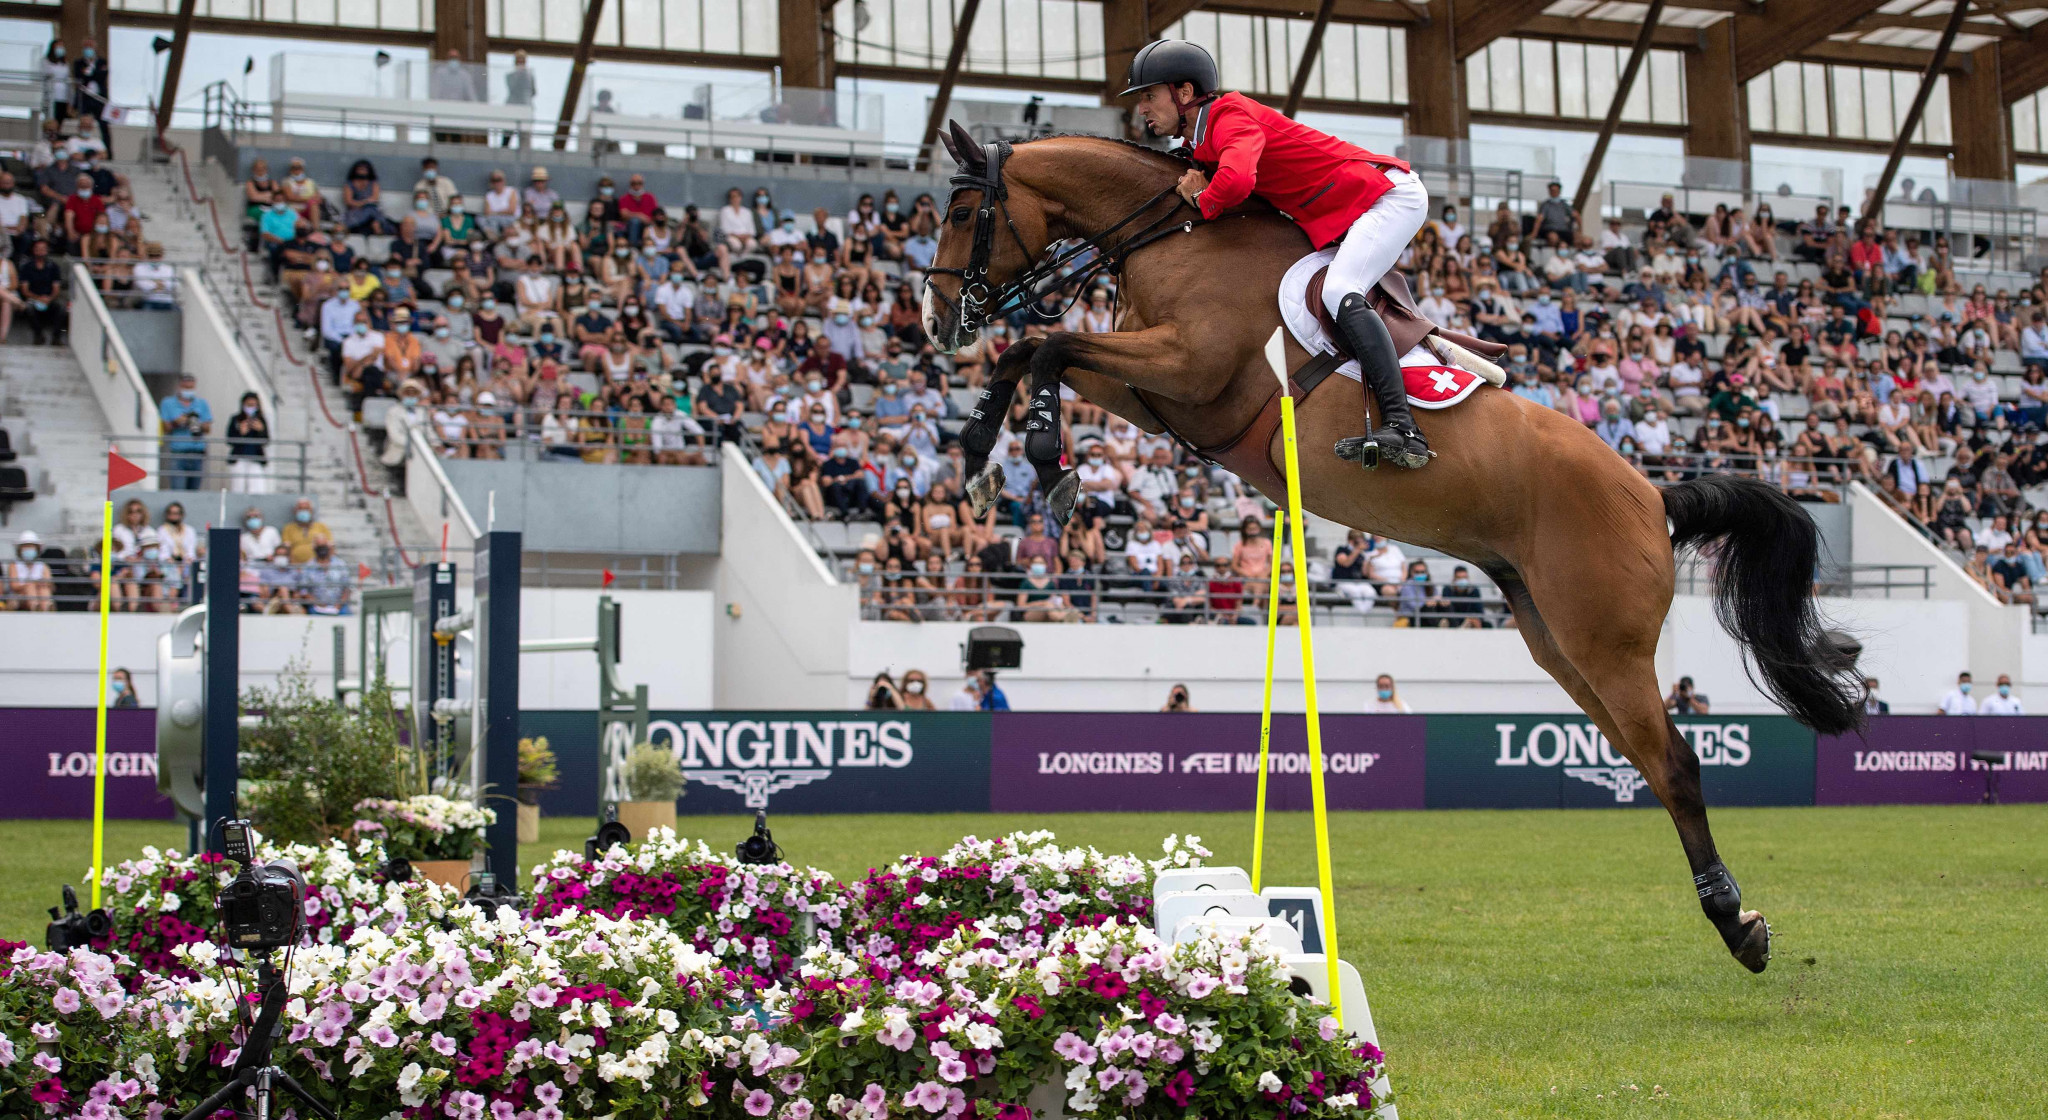 Mamdli's final clear round earns Switzerland win in FEI Jumping Nations Cup at La Baule